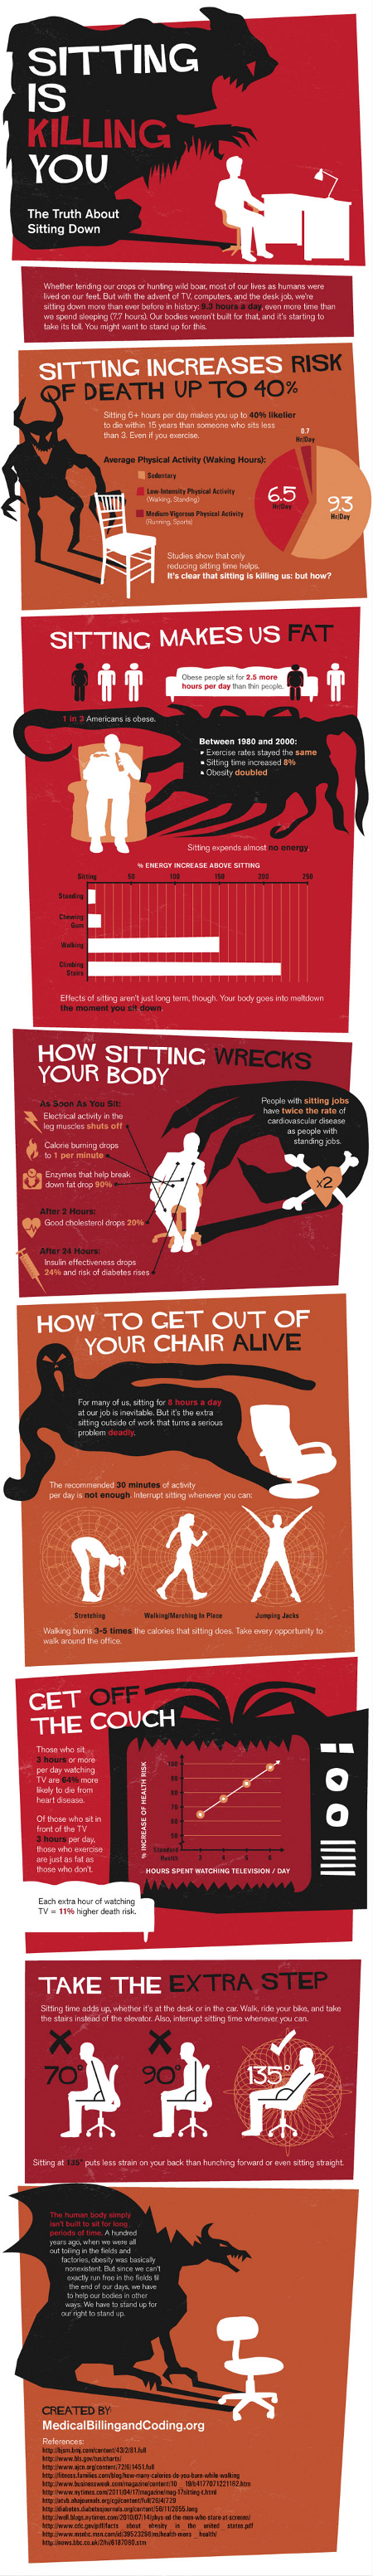 Sitting Down Can Kill You Infographic Jaypeeonline Health Fitness Health Health And Wellness